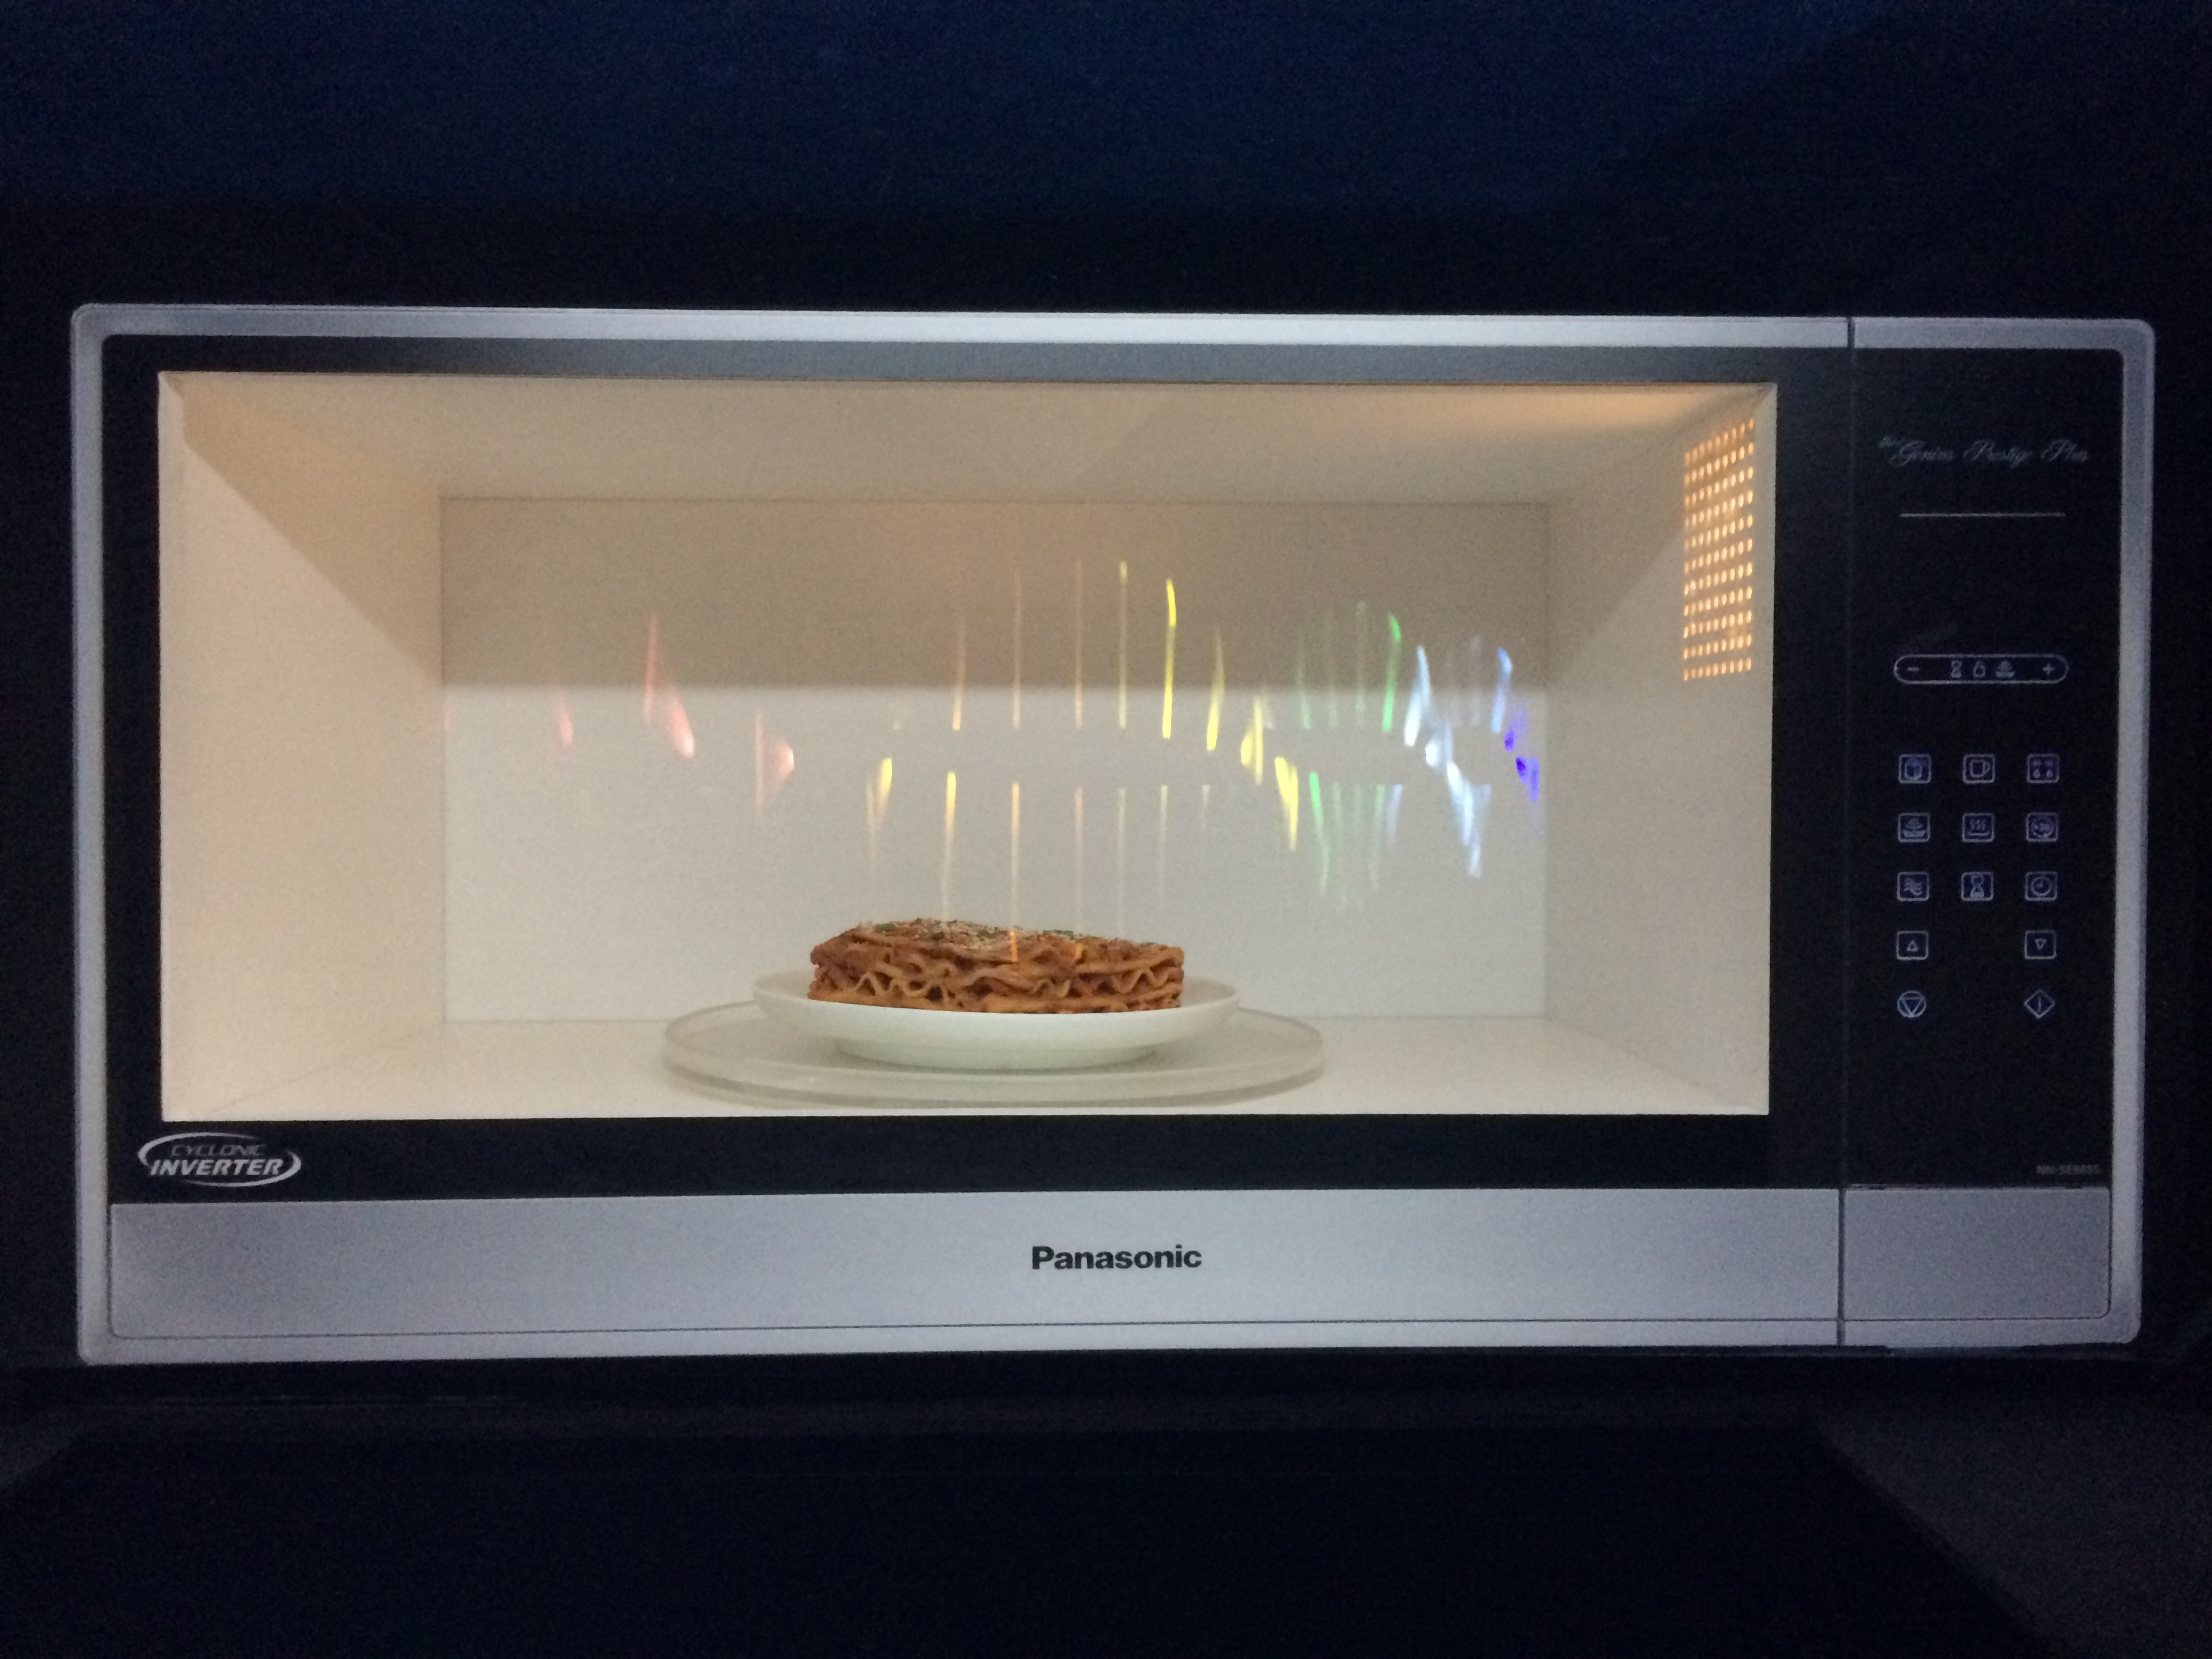 Panasonic Genius Prestige Plus Microwave with Cyclonic Wave Technology